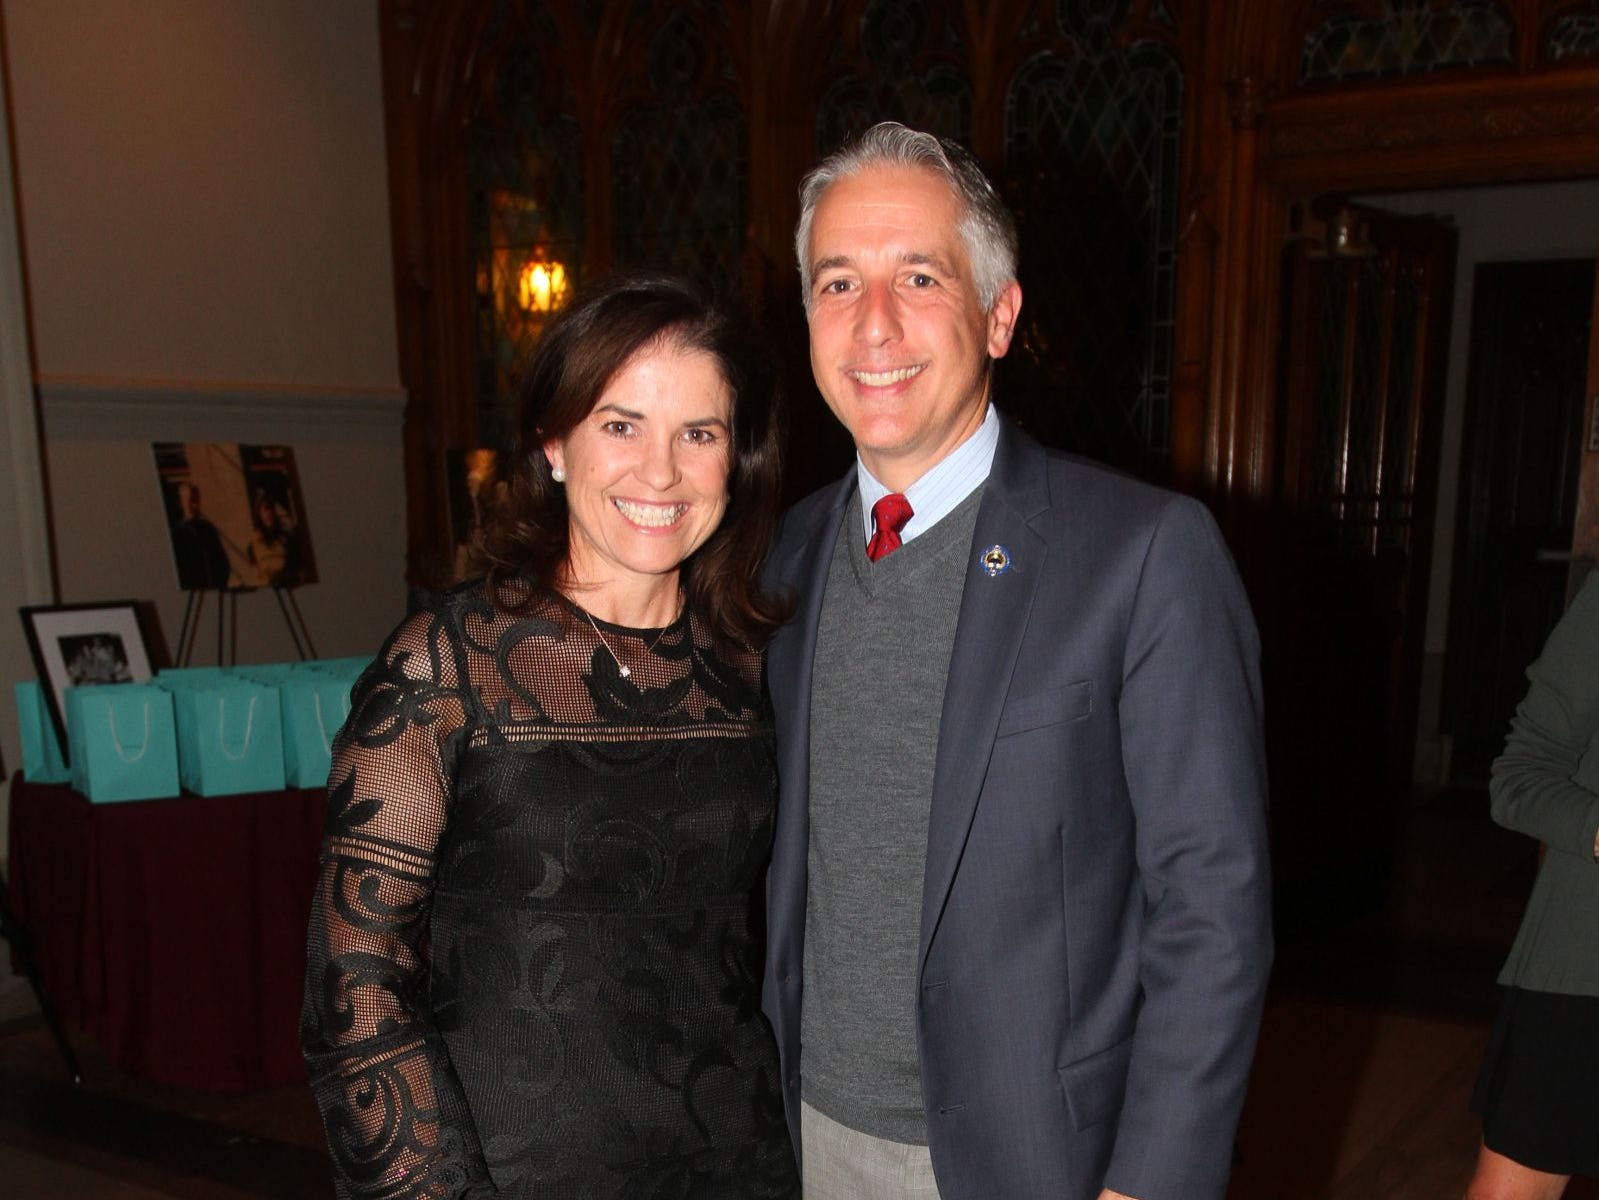 Patricia DePhillips; Assemblyman Christopher DePhillips. Wyckoff Family YMCA hosted its 75th anniversary gala to celebrate its benefactors, held at the Rio Vista seminary in Mahwah. 11/16/2018